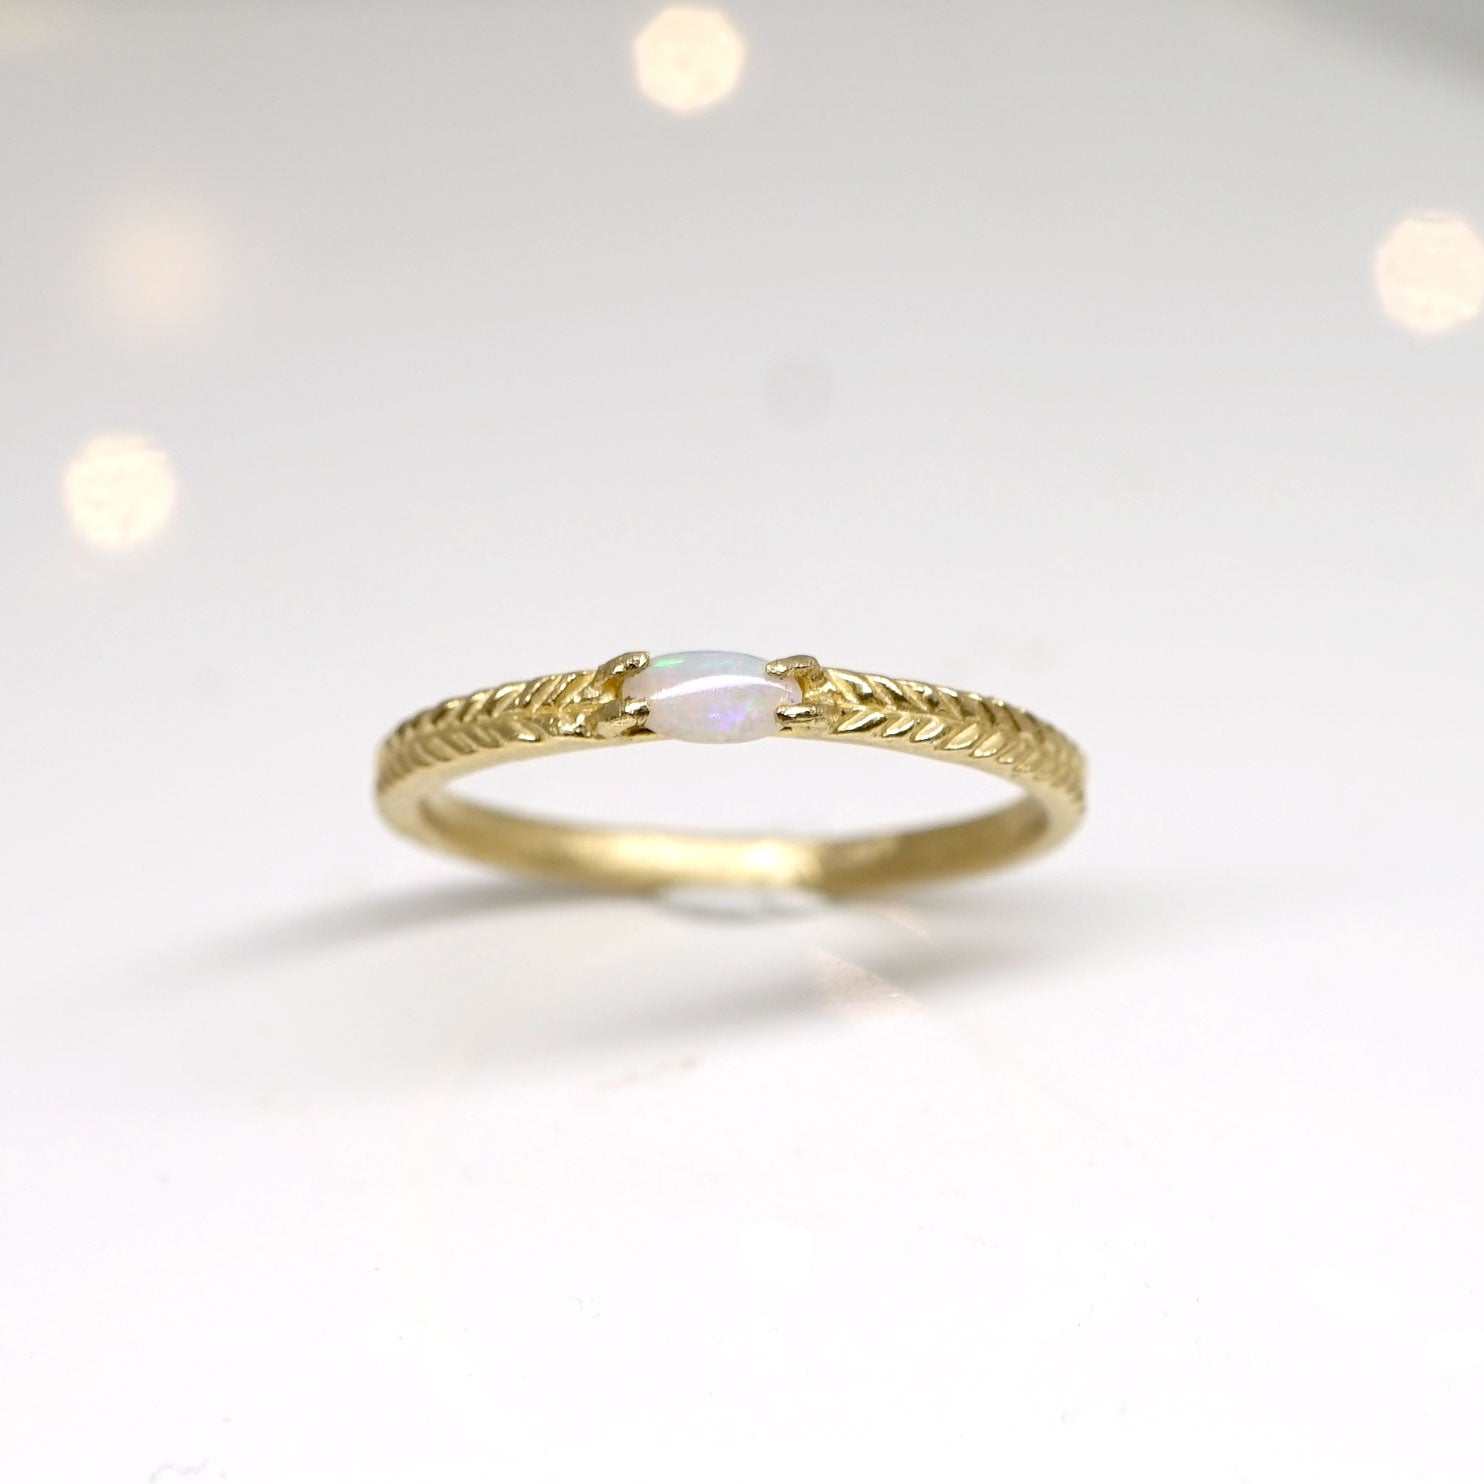 Opal ring with details in 14K gold